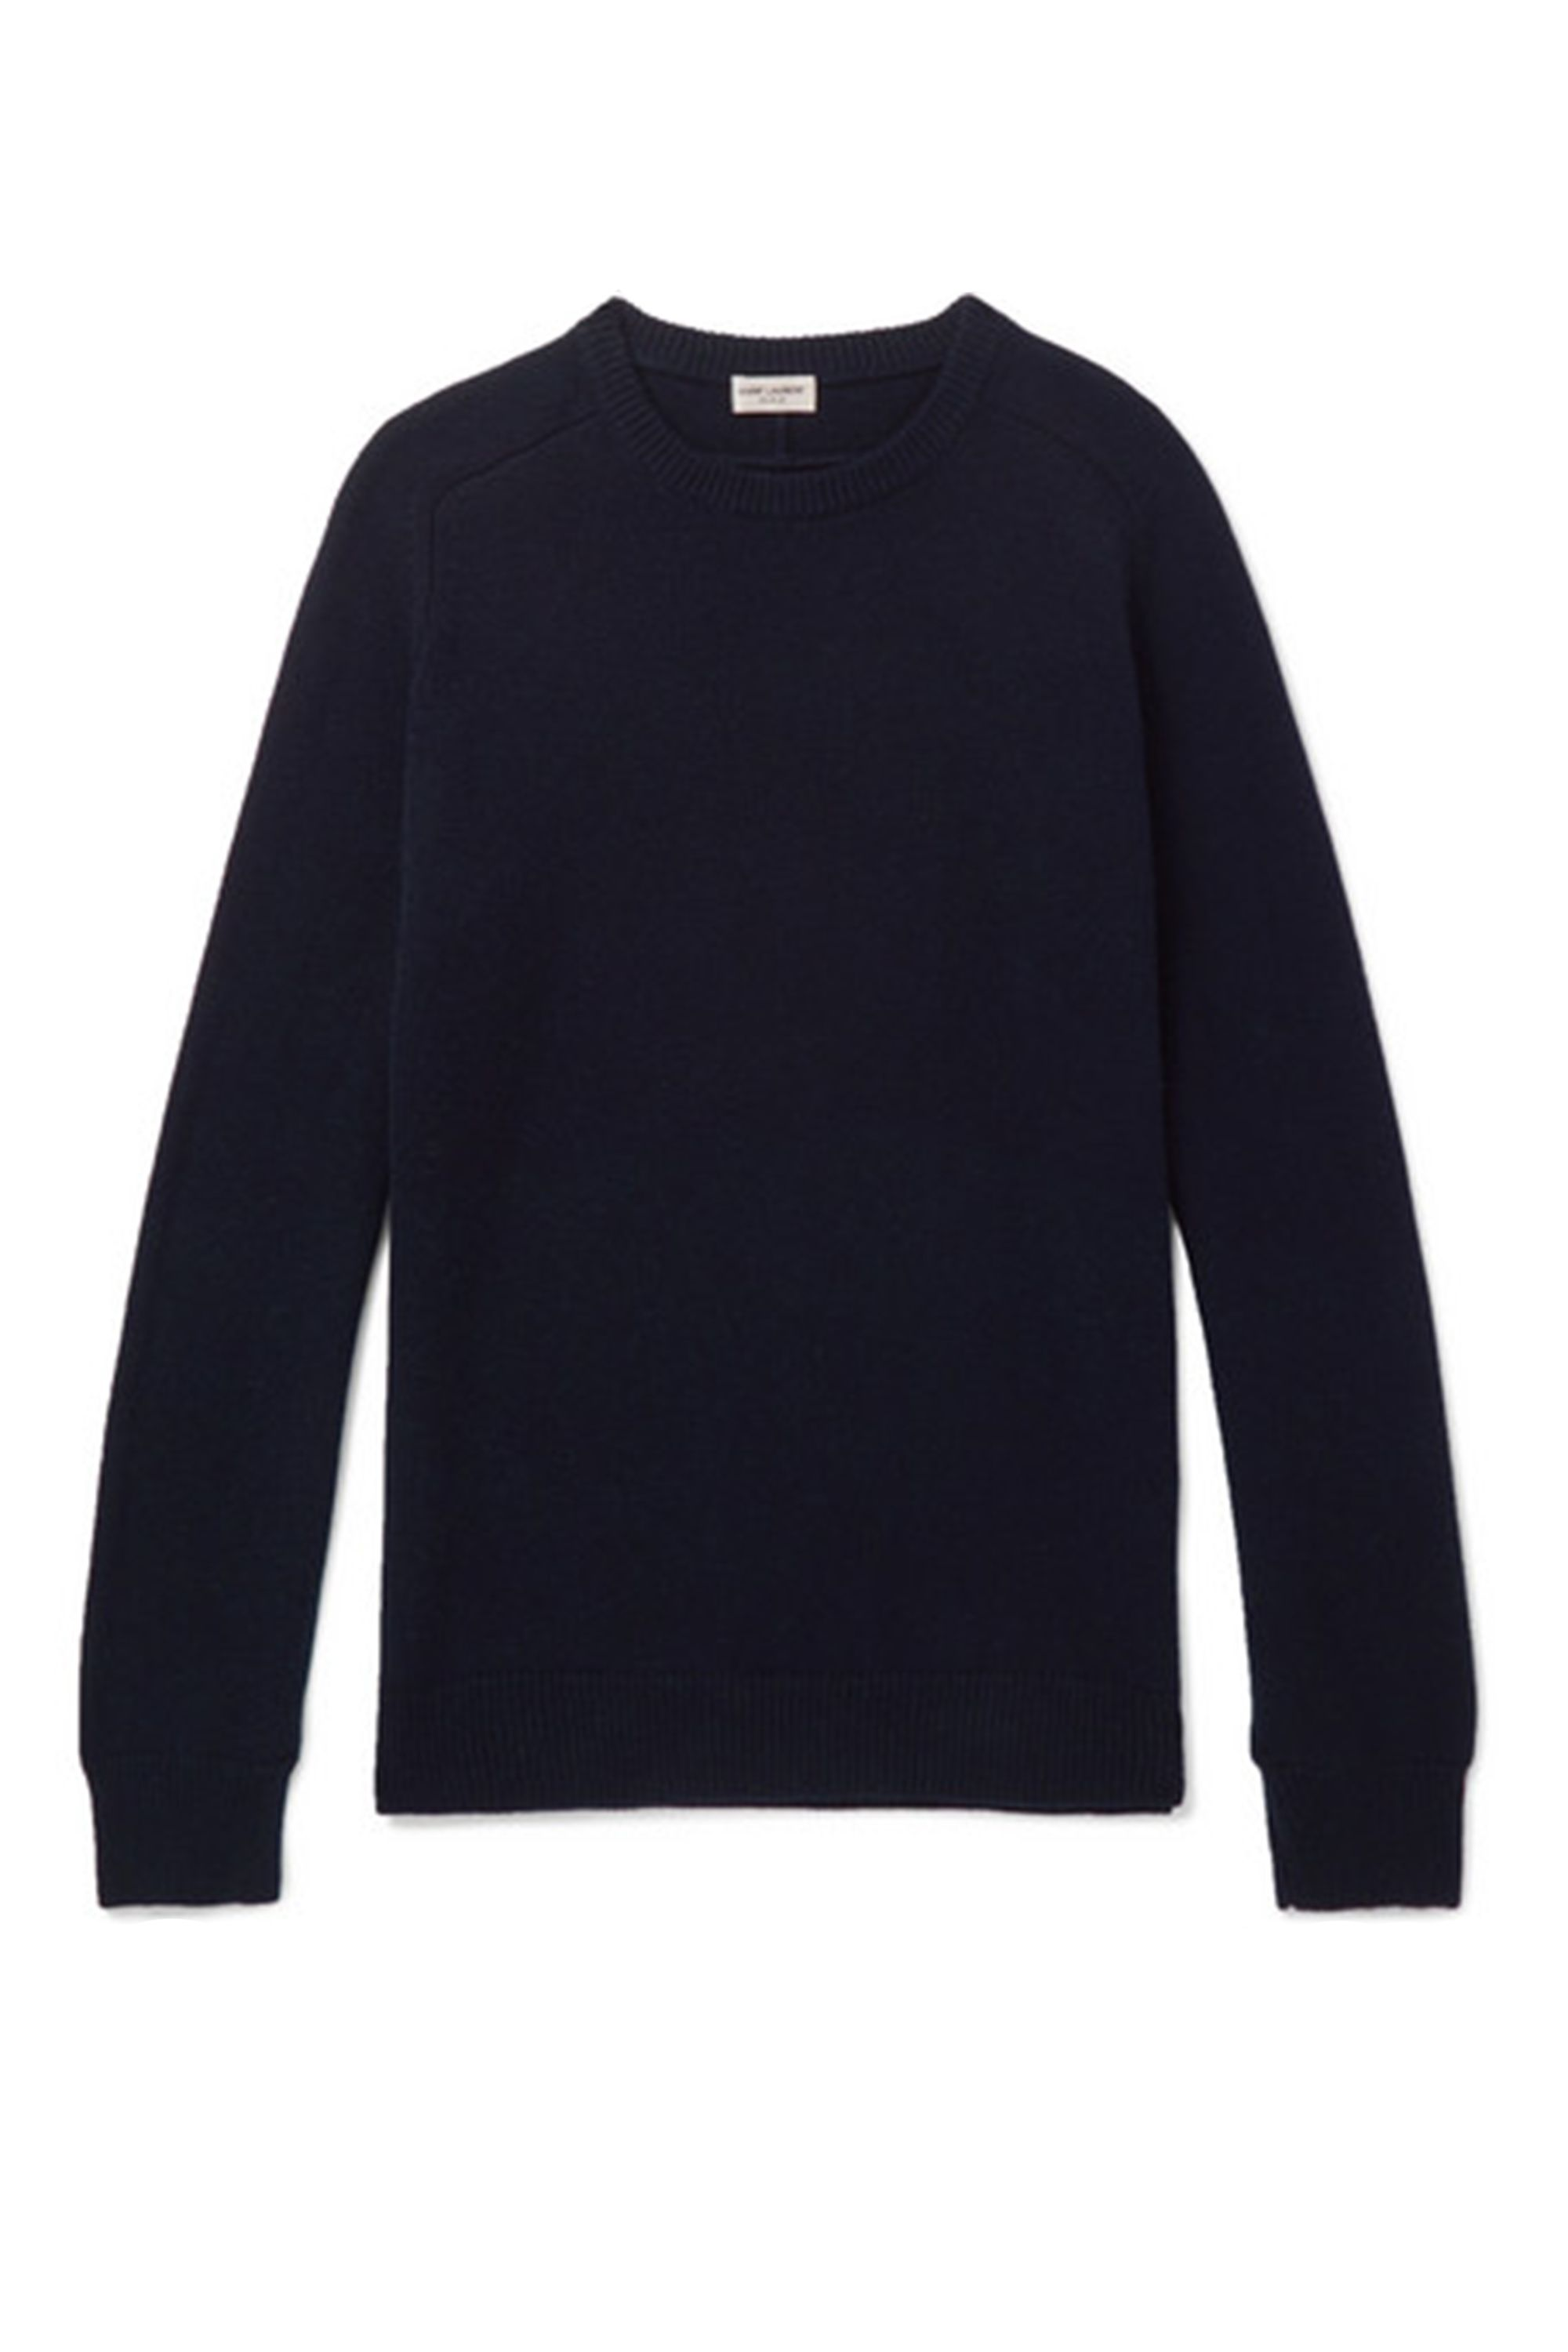 Cashmere jumper - Men's Christmas Gifts